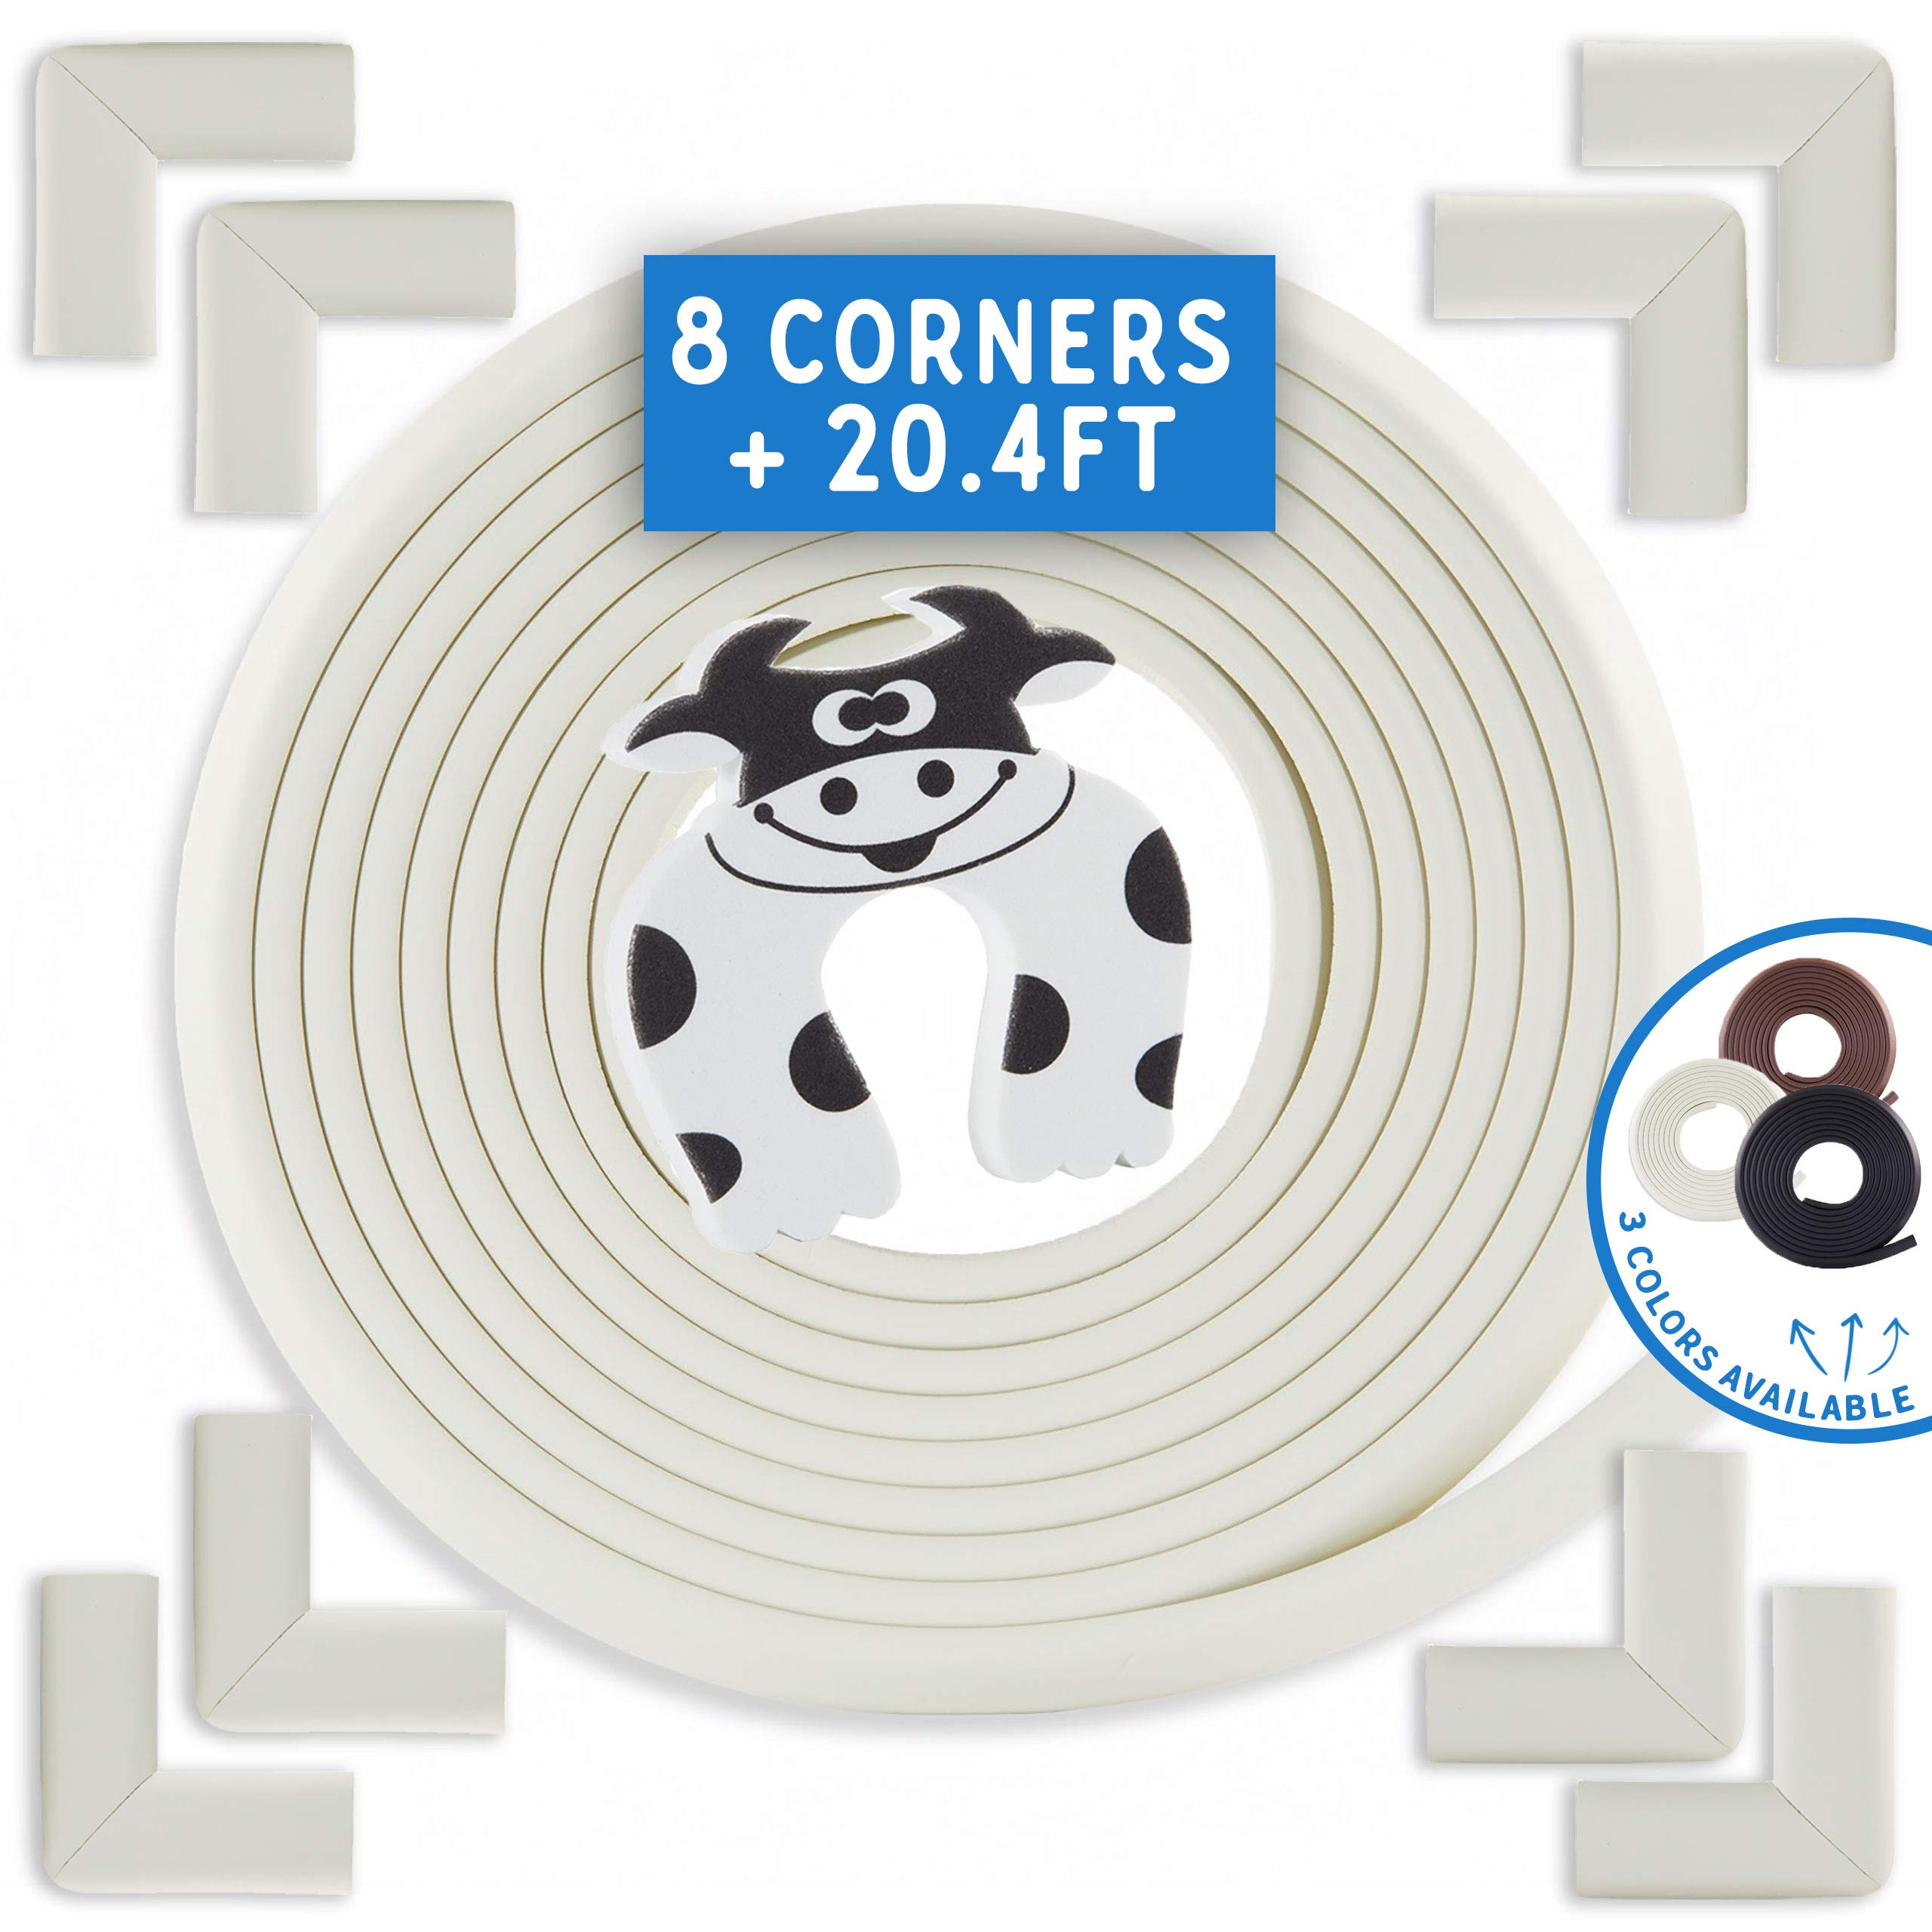 Bebe Earth | Baby Proofing Edge & Corner Guard Protector Set | Safety Bumpers | Child Proof Furniture & Tables | Pre-Taped Bumper Corners [20.4 ft + 8 Corner Guards] Oyster White